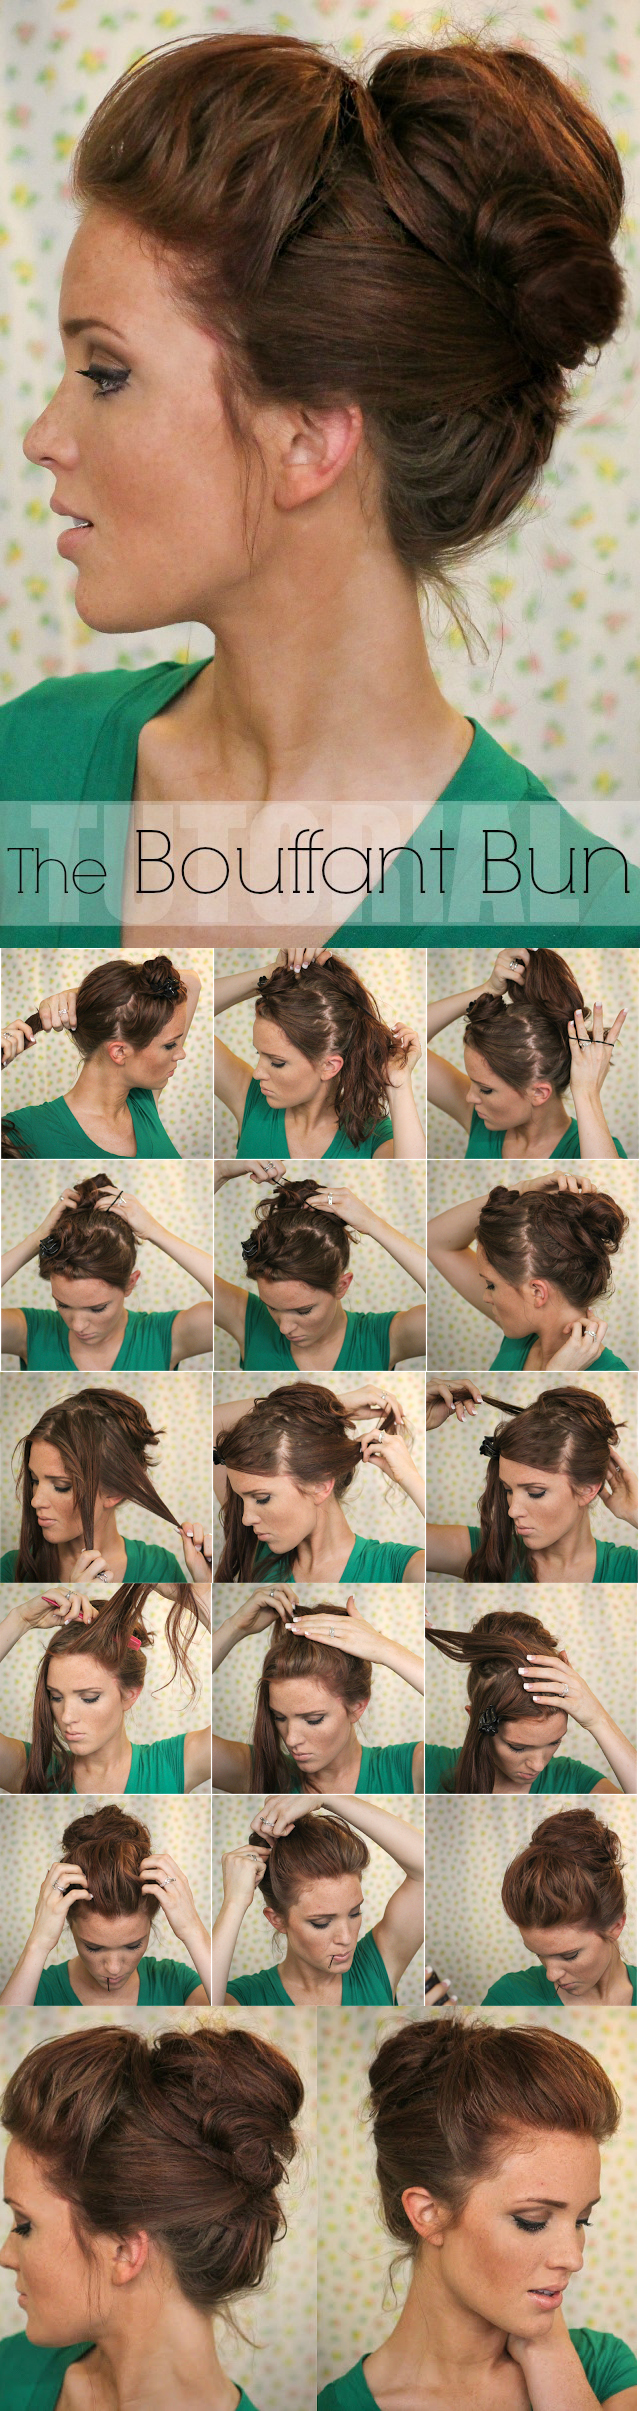 Oh-So-Simple-Bun-Hairstyles-Tutorials-The-Bouffant-Bun